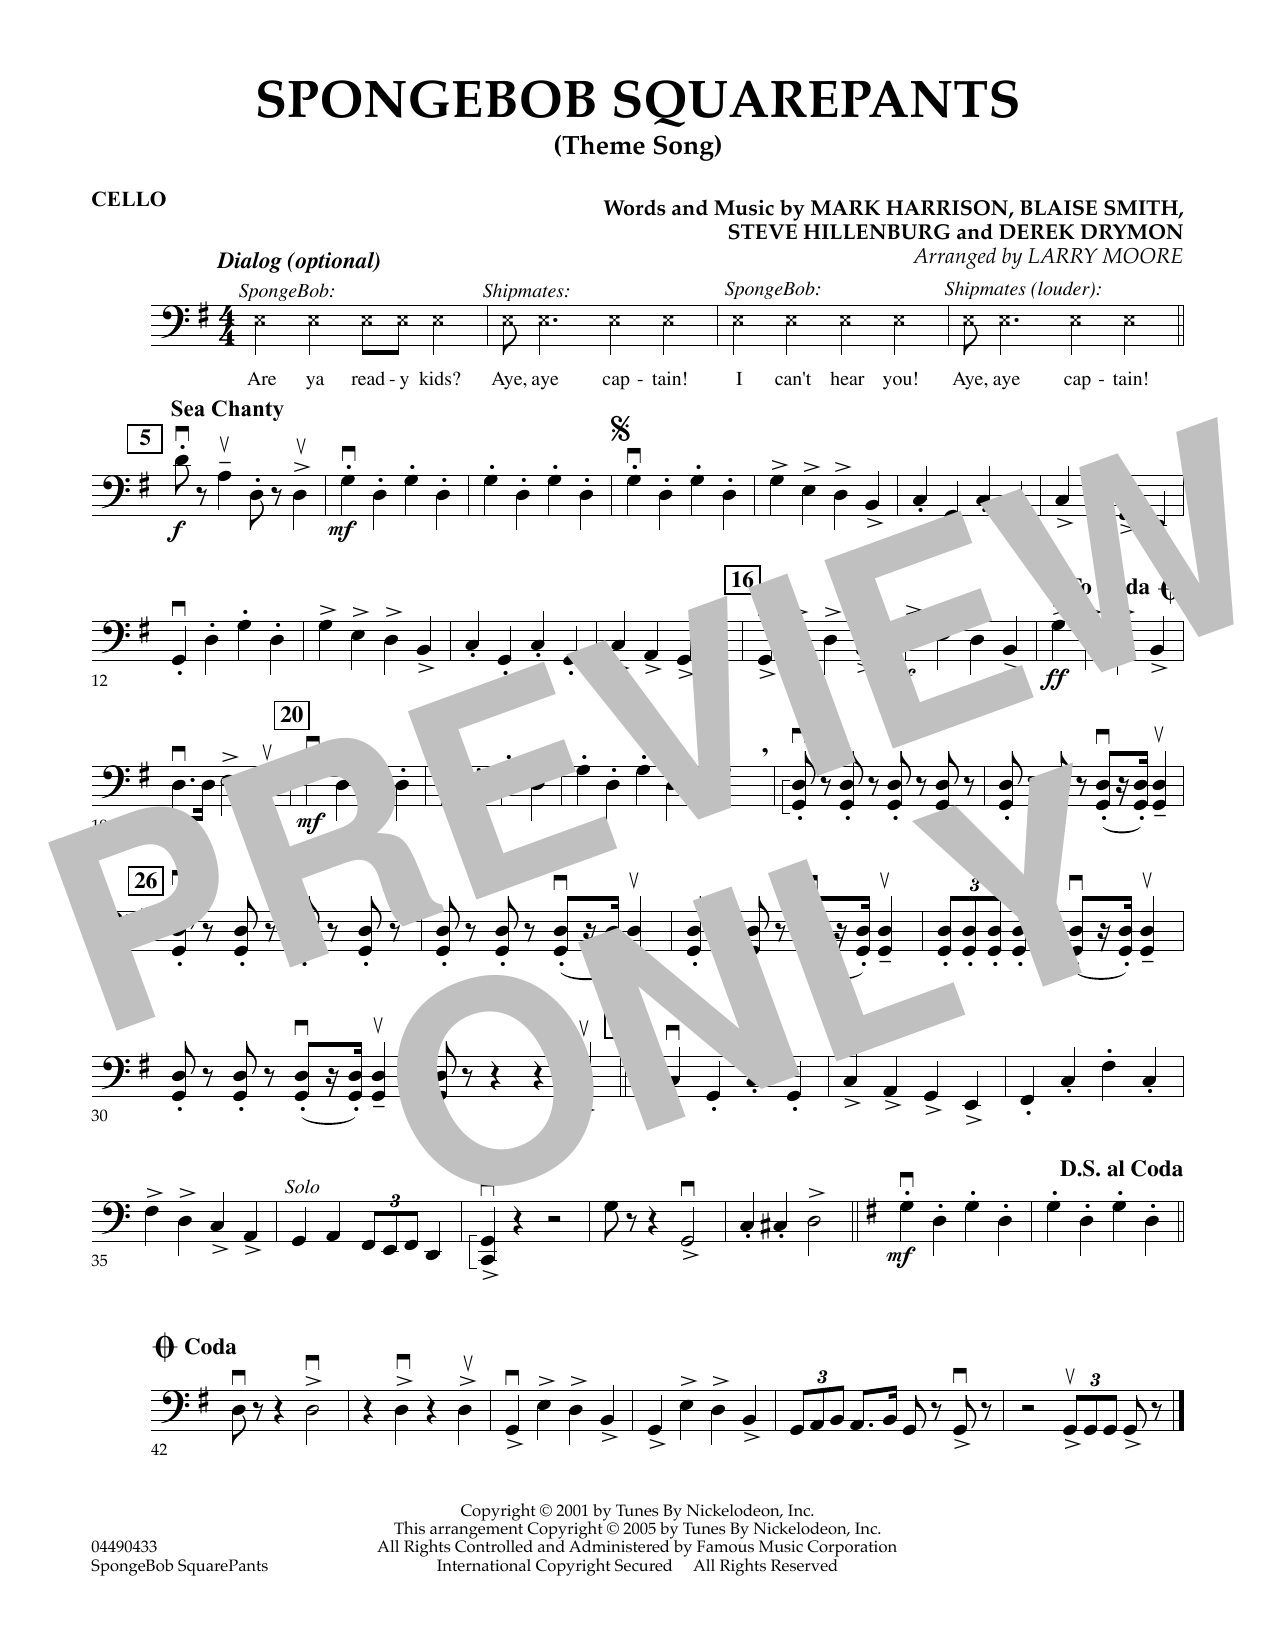 Larry Moore SpongeBob SquarePants (Theme Song) - Cello sheet music preview music notes and score for String Quartet including 1 page(s)